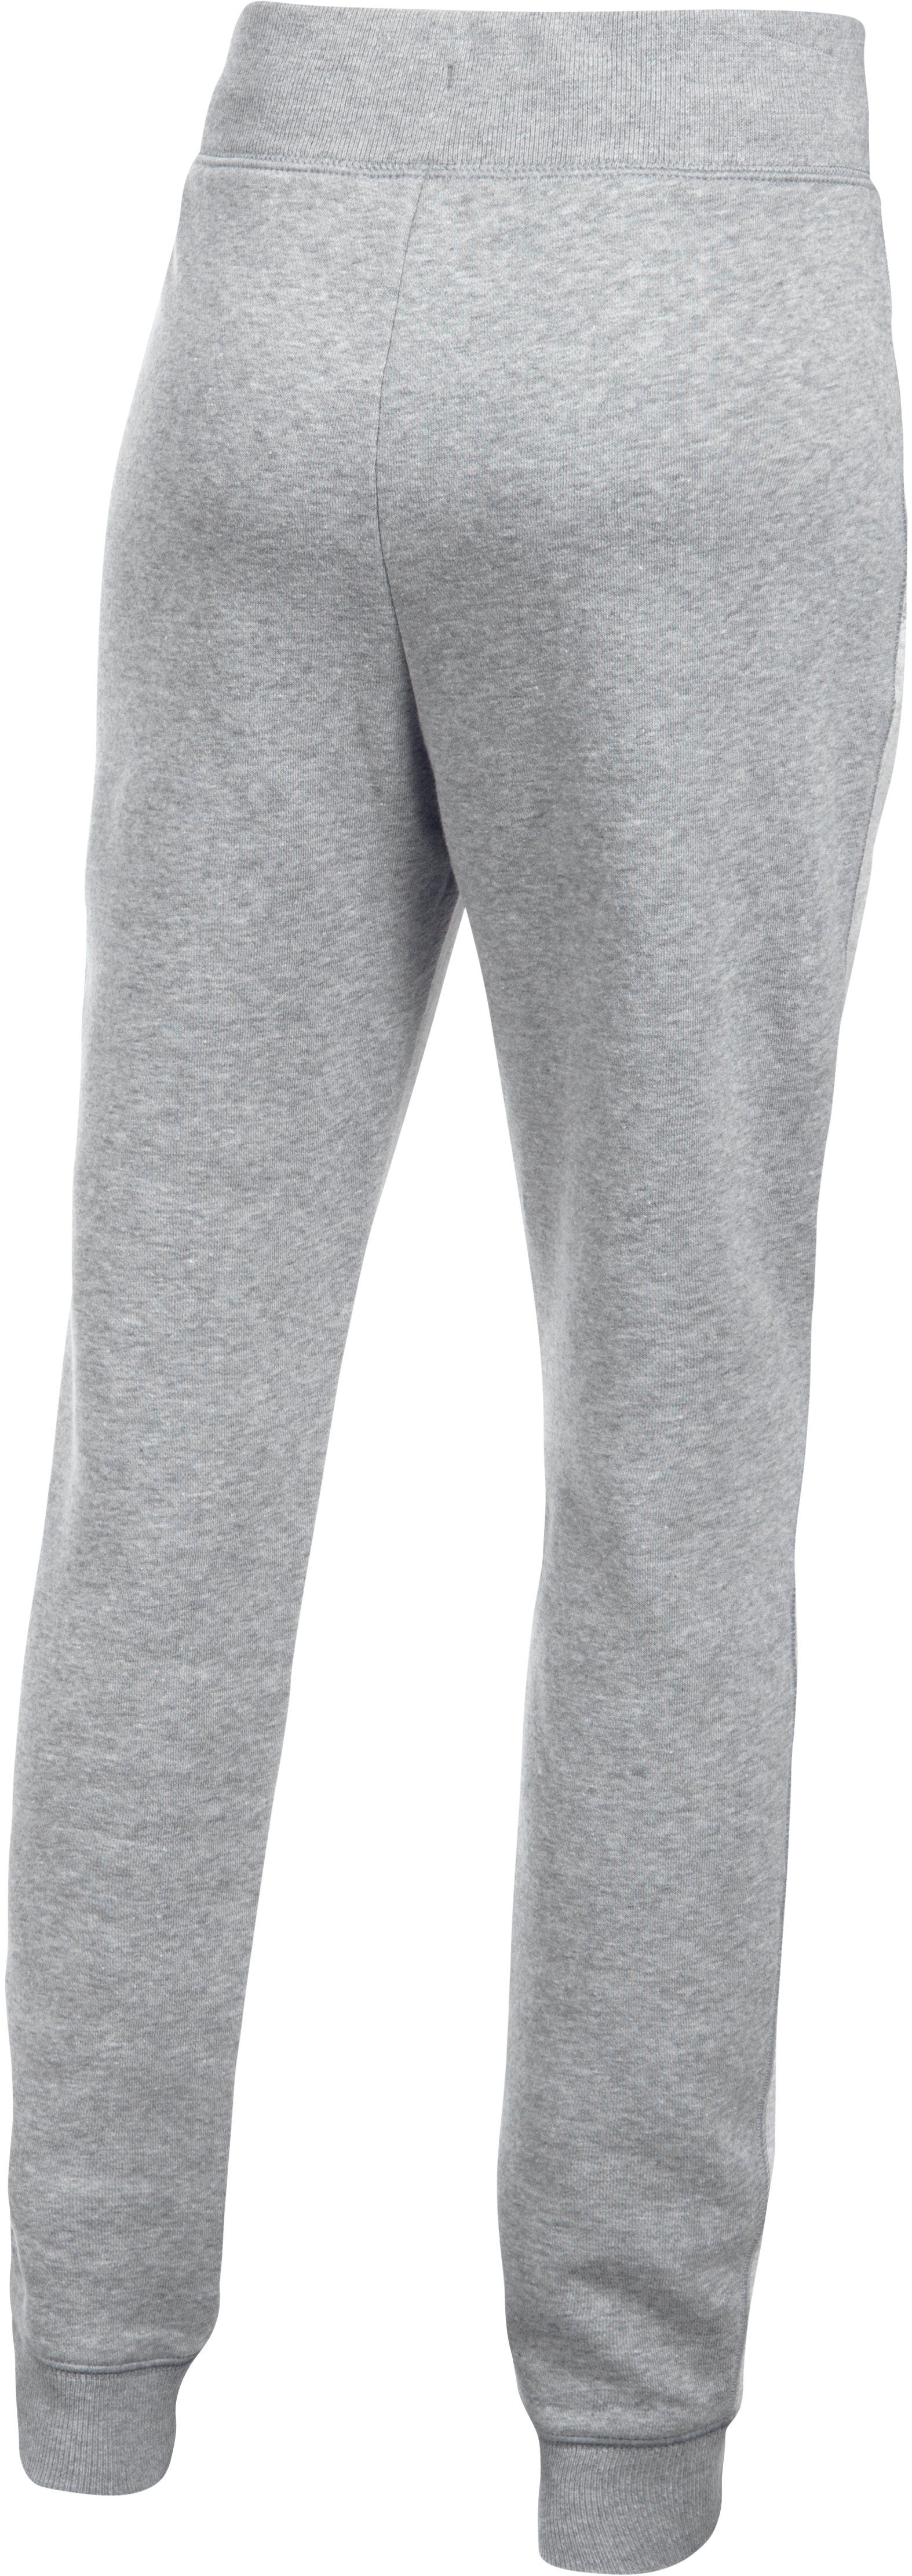 Girls' UA Favorite Fleece Joggers, AIR FORCE GRAY HEATHER,